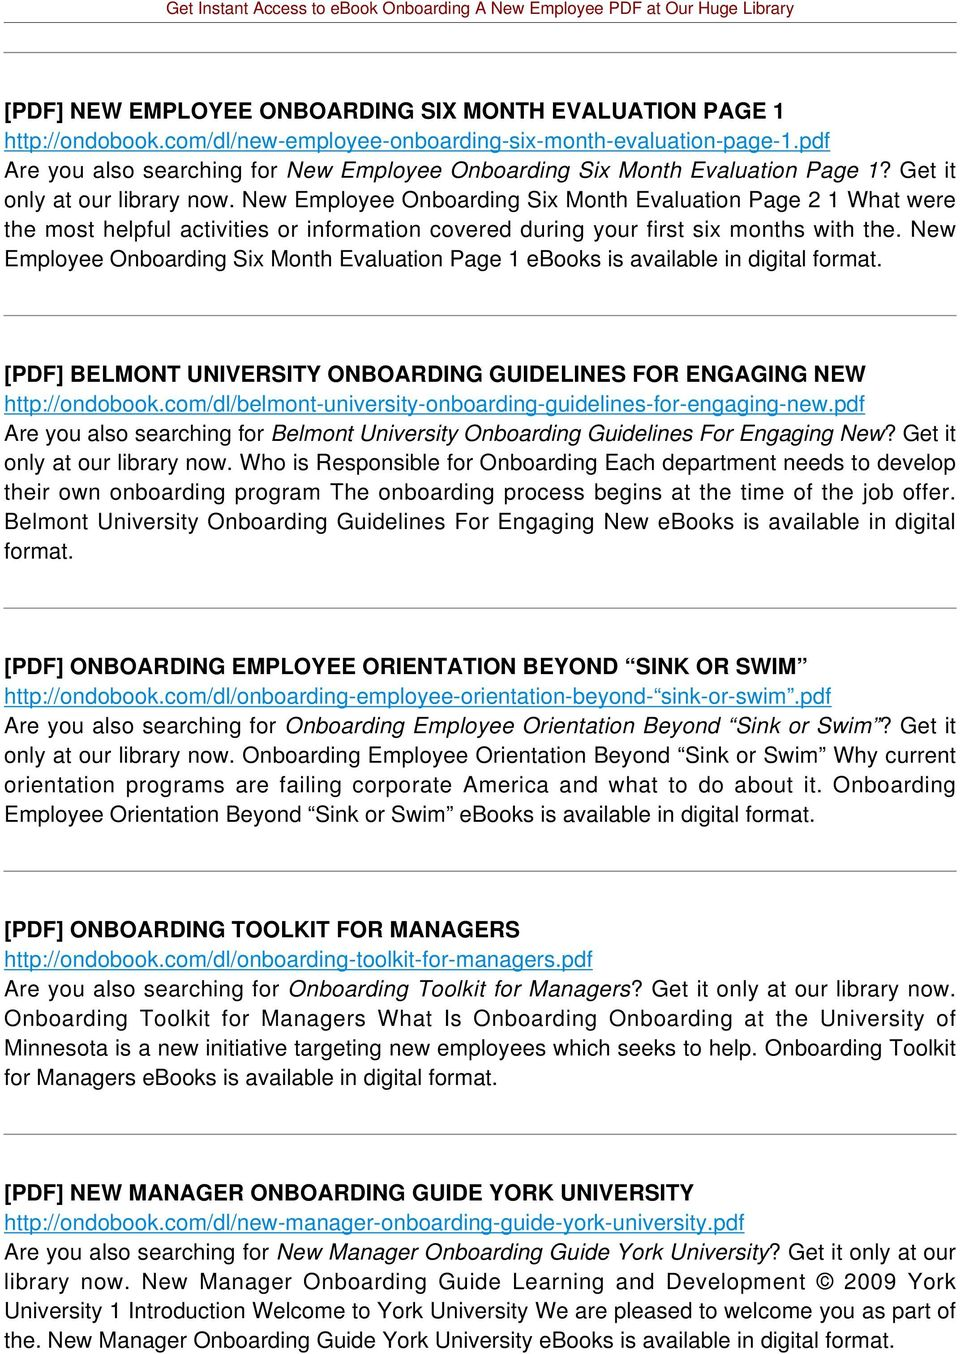 New Employee Onboarding Six Month Evaluation Page 2 1 What were the most helpful activities or information covered during your first six months with the.